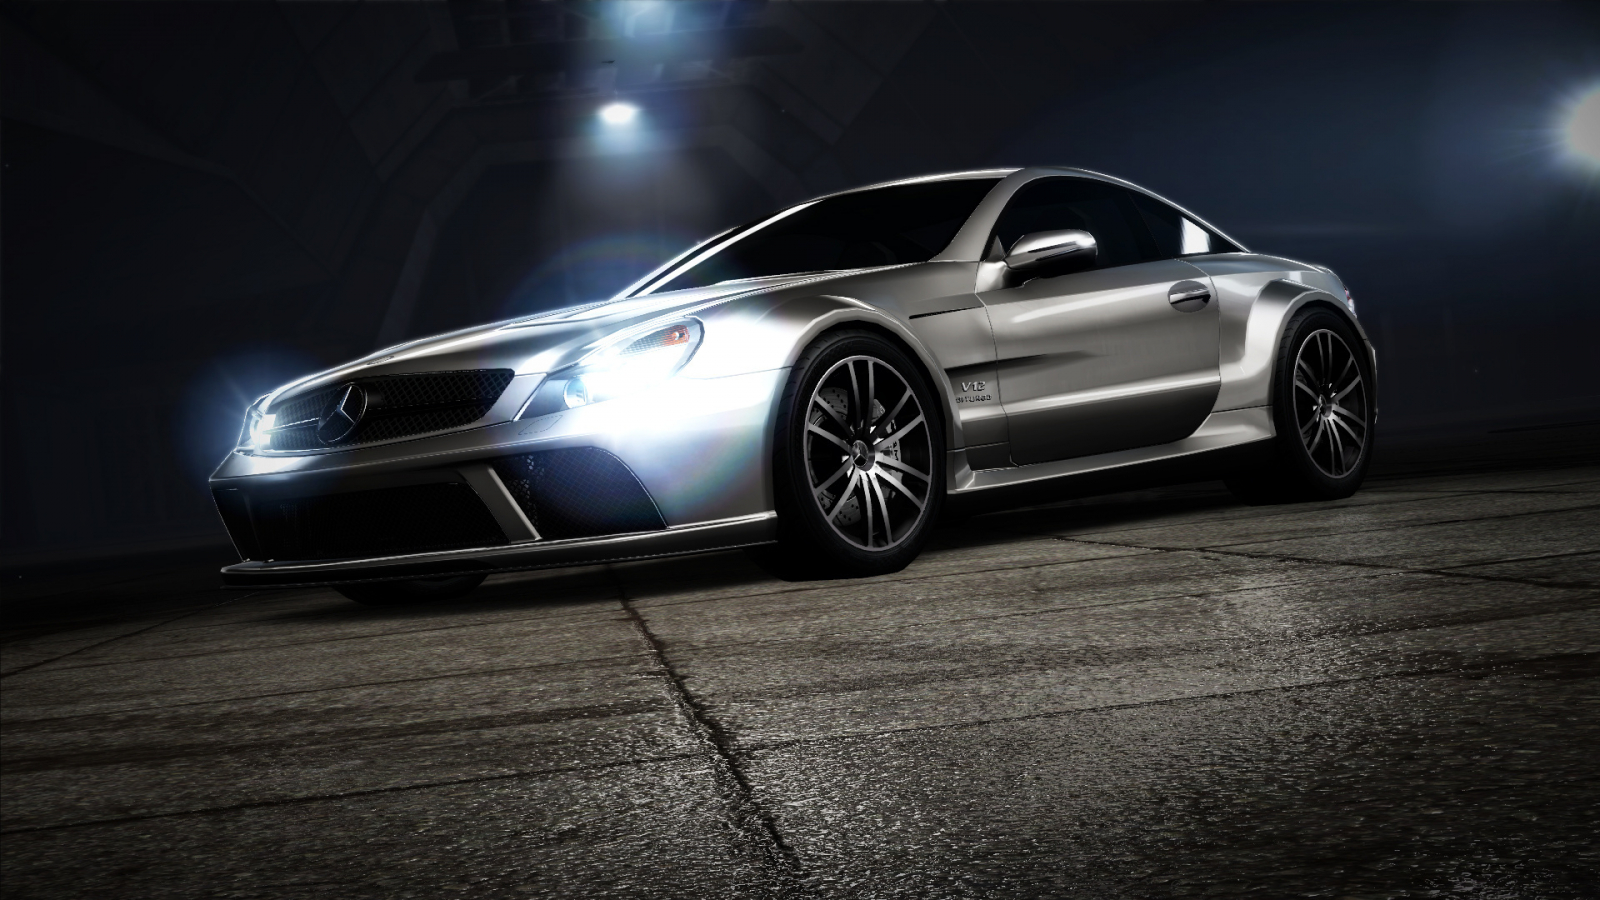 Free Download Sivi Mercedes Sl65 Amg Pozadineinfo Najbolje